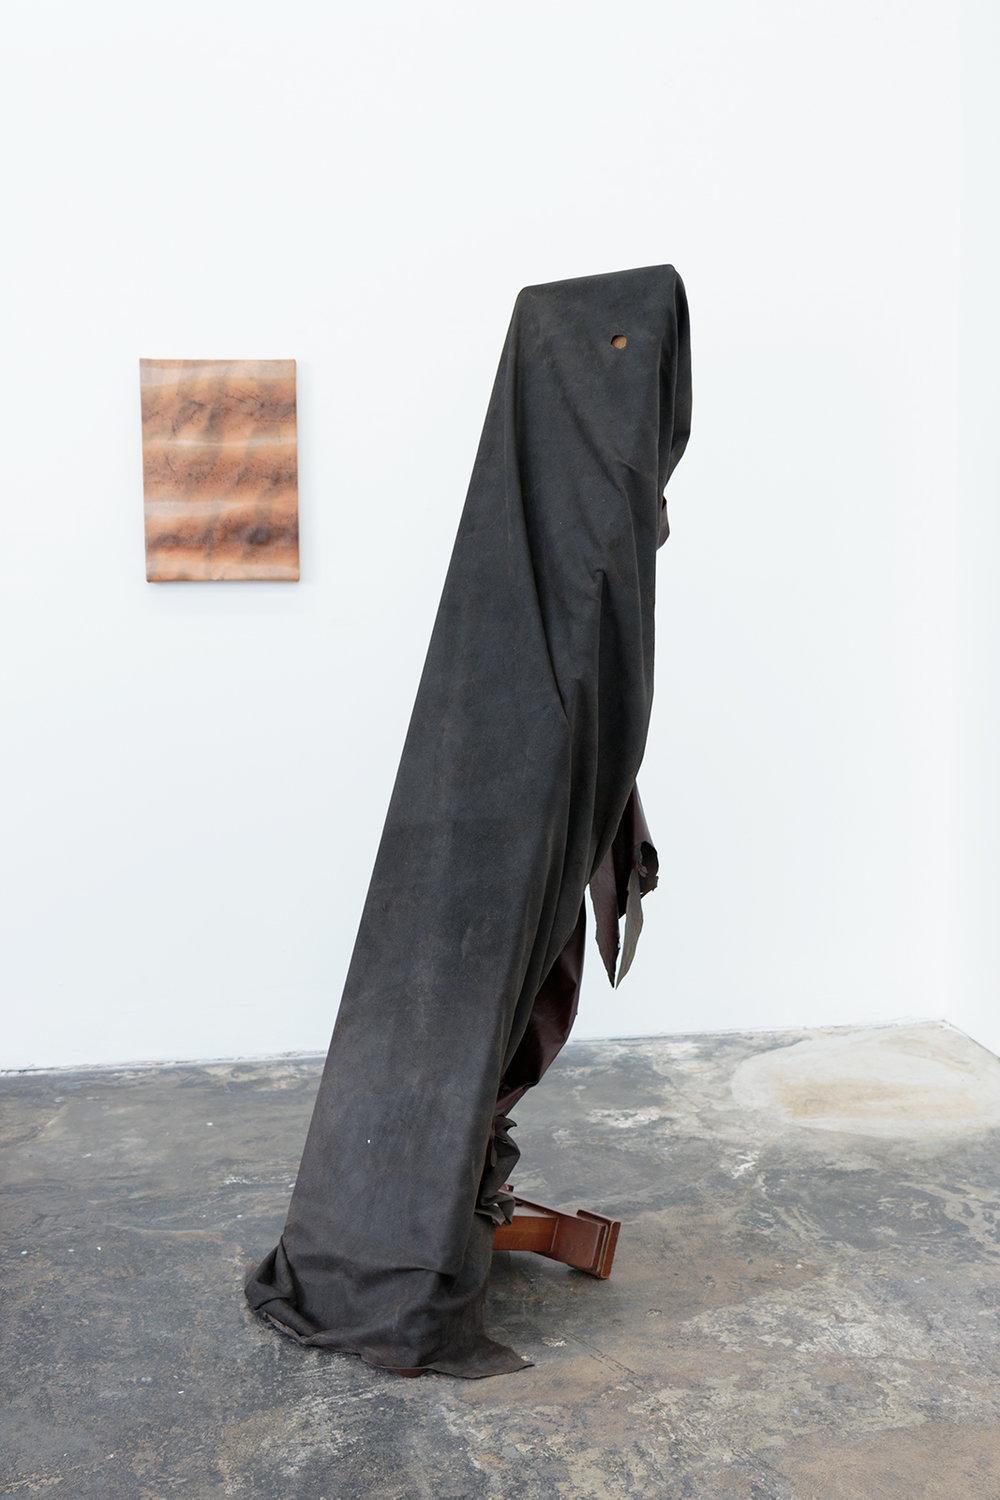 Lutheran Reaper (Chill out Joseph Beuys), 2018     Furniture Leather, Church Pew